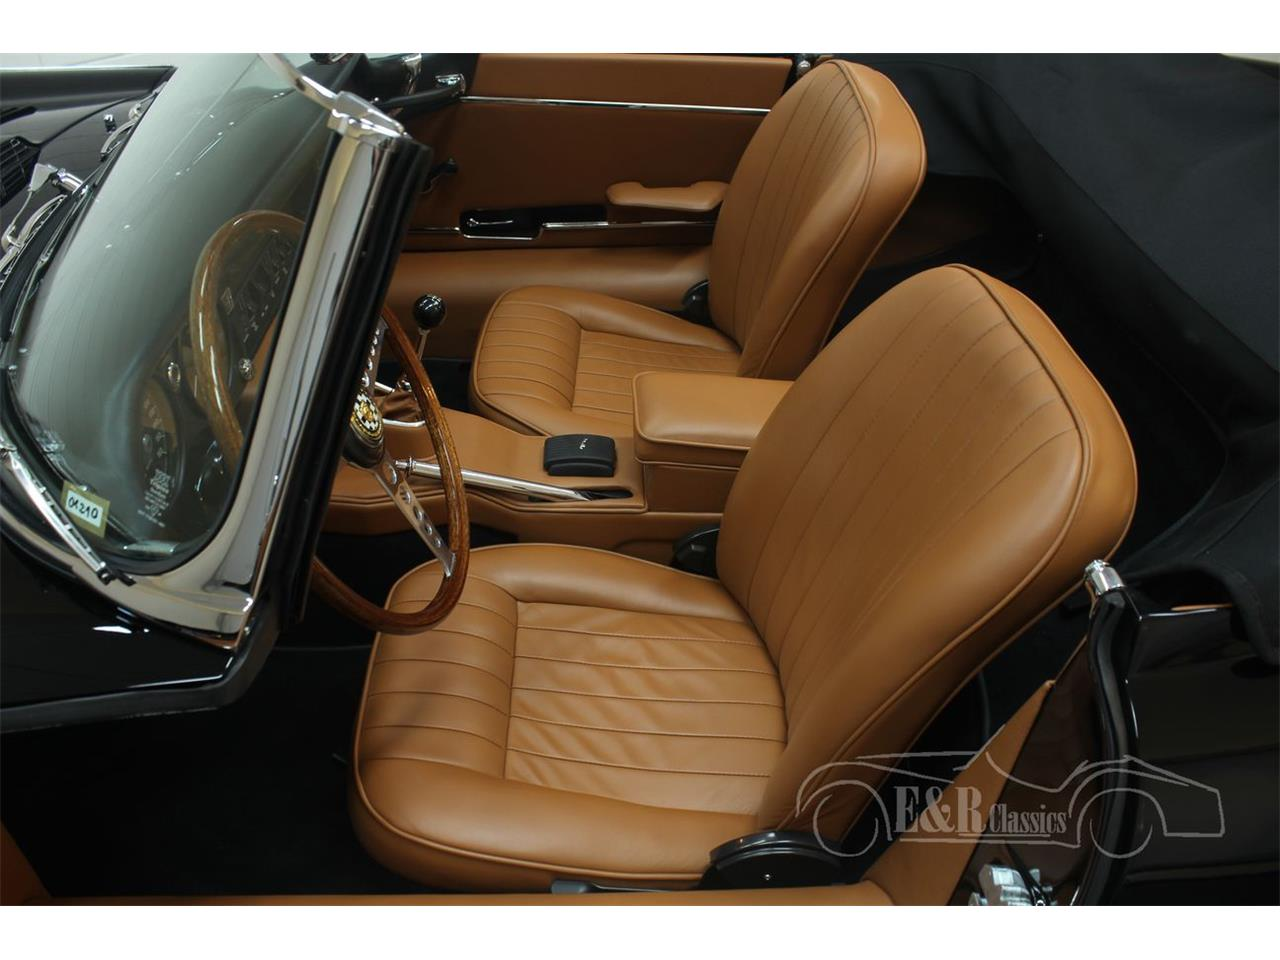 Large Picture of Classic 1969 Jaguar E-Type located in Waalwijk noord brabant - $145,500.00 Offered by E & R Classics - QOU8